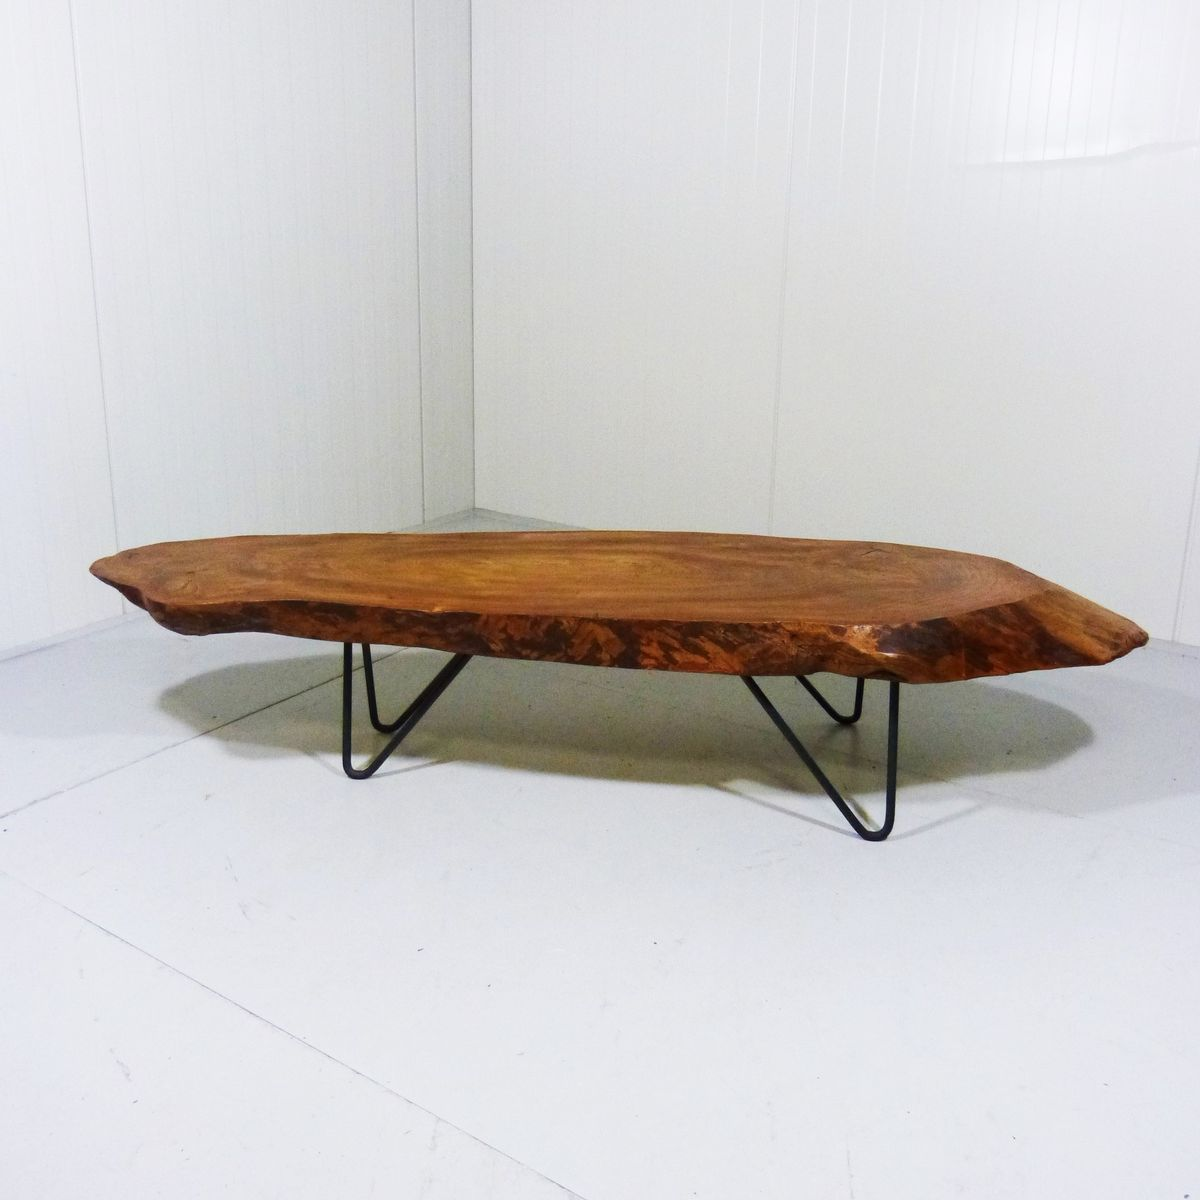 Table basse avec tronc darbre for Table basse 3 pieds